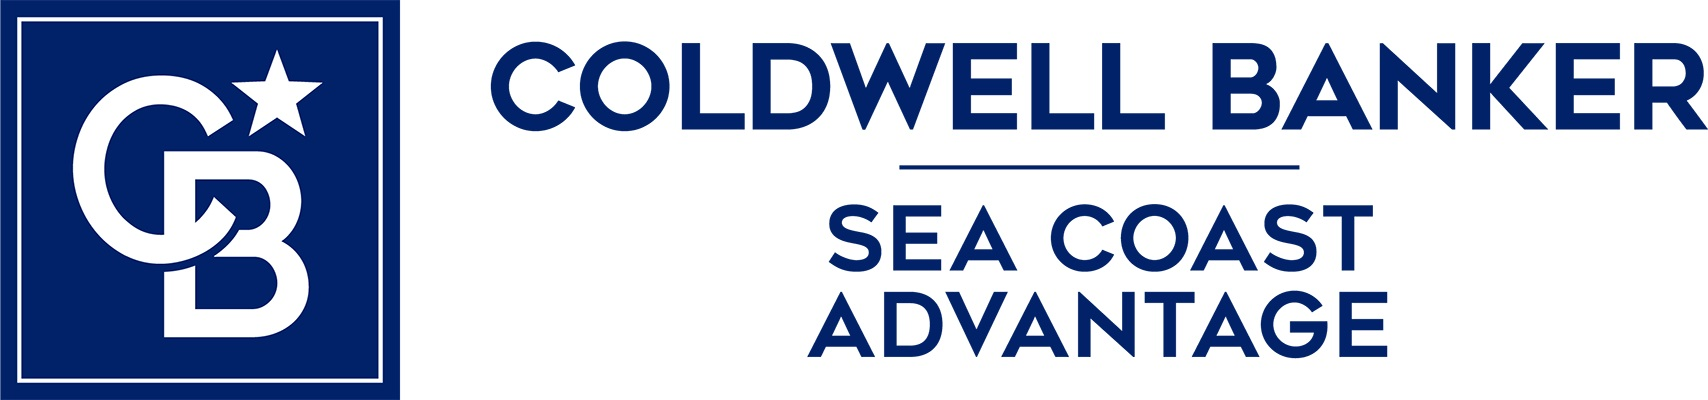 Bill Carney - Coldwell Banker Sea Coast Advantage Realty